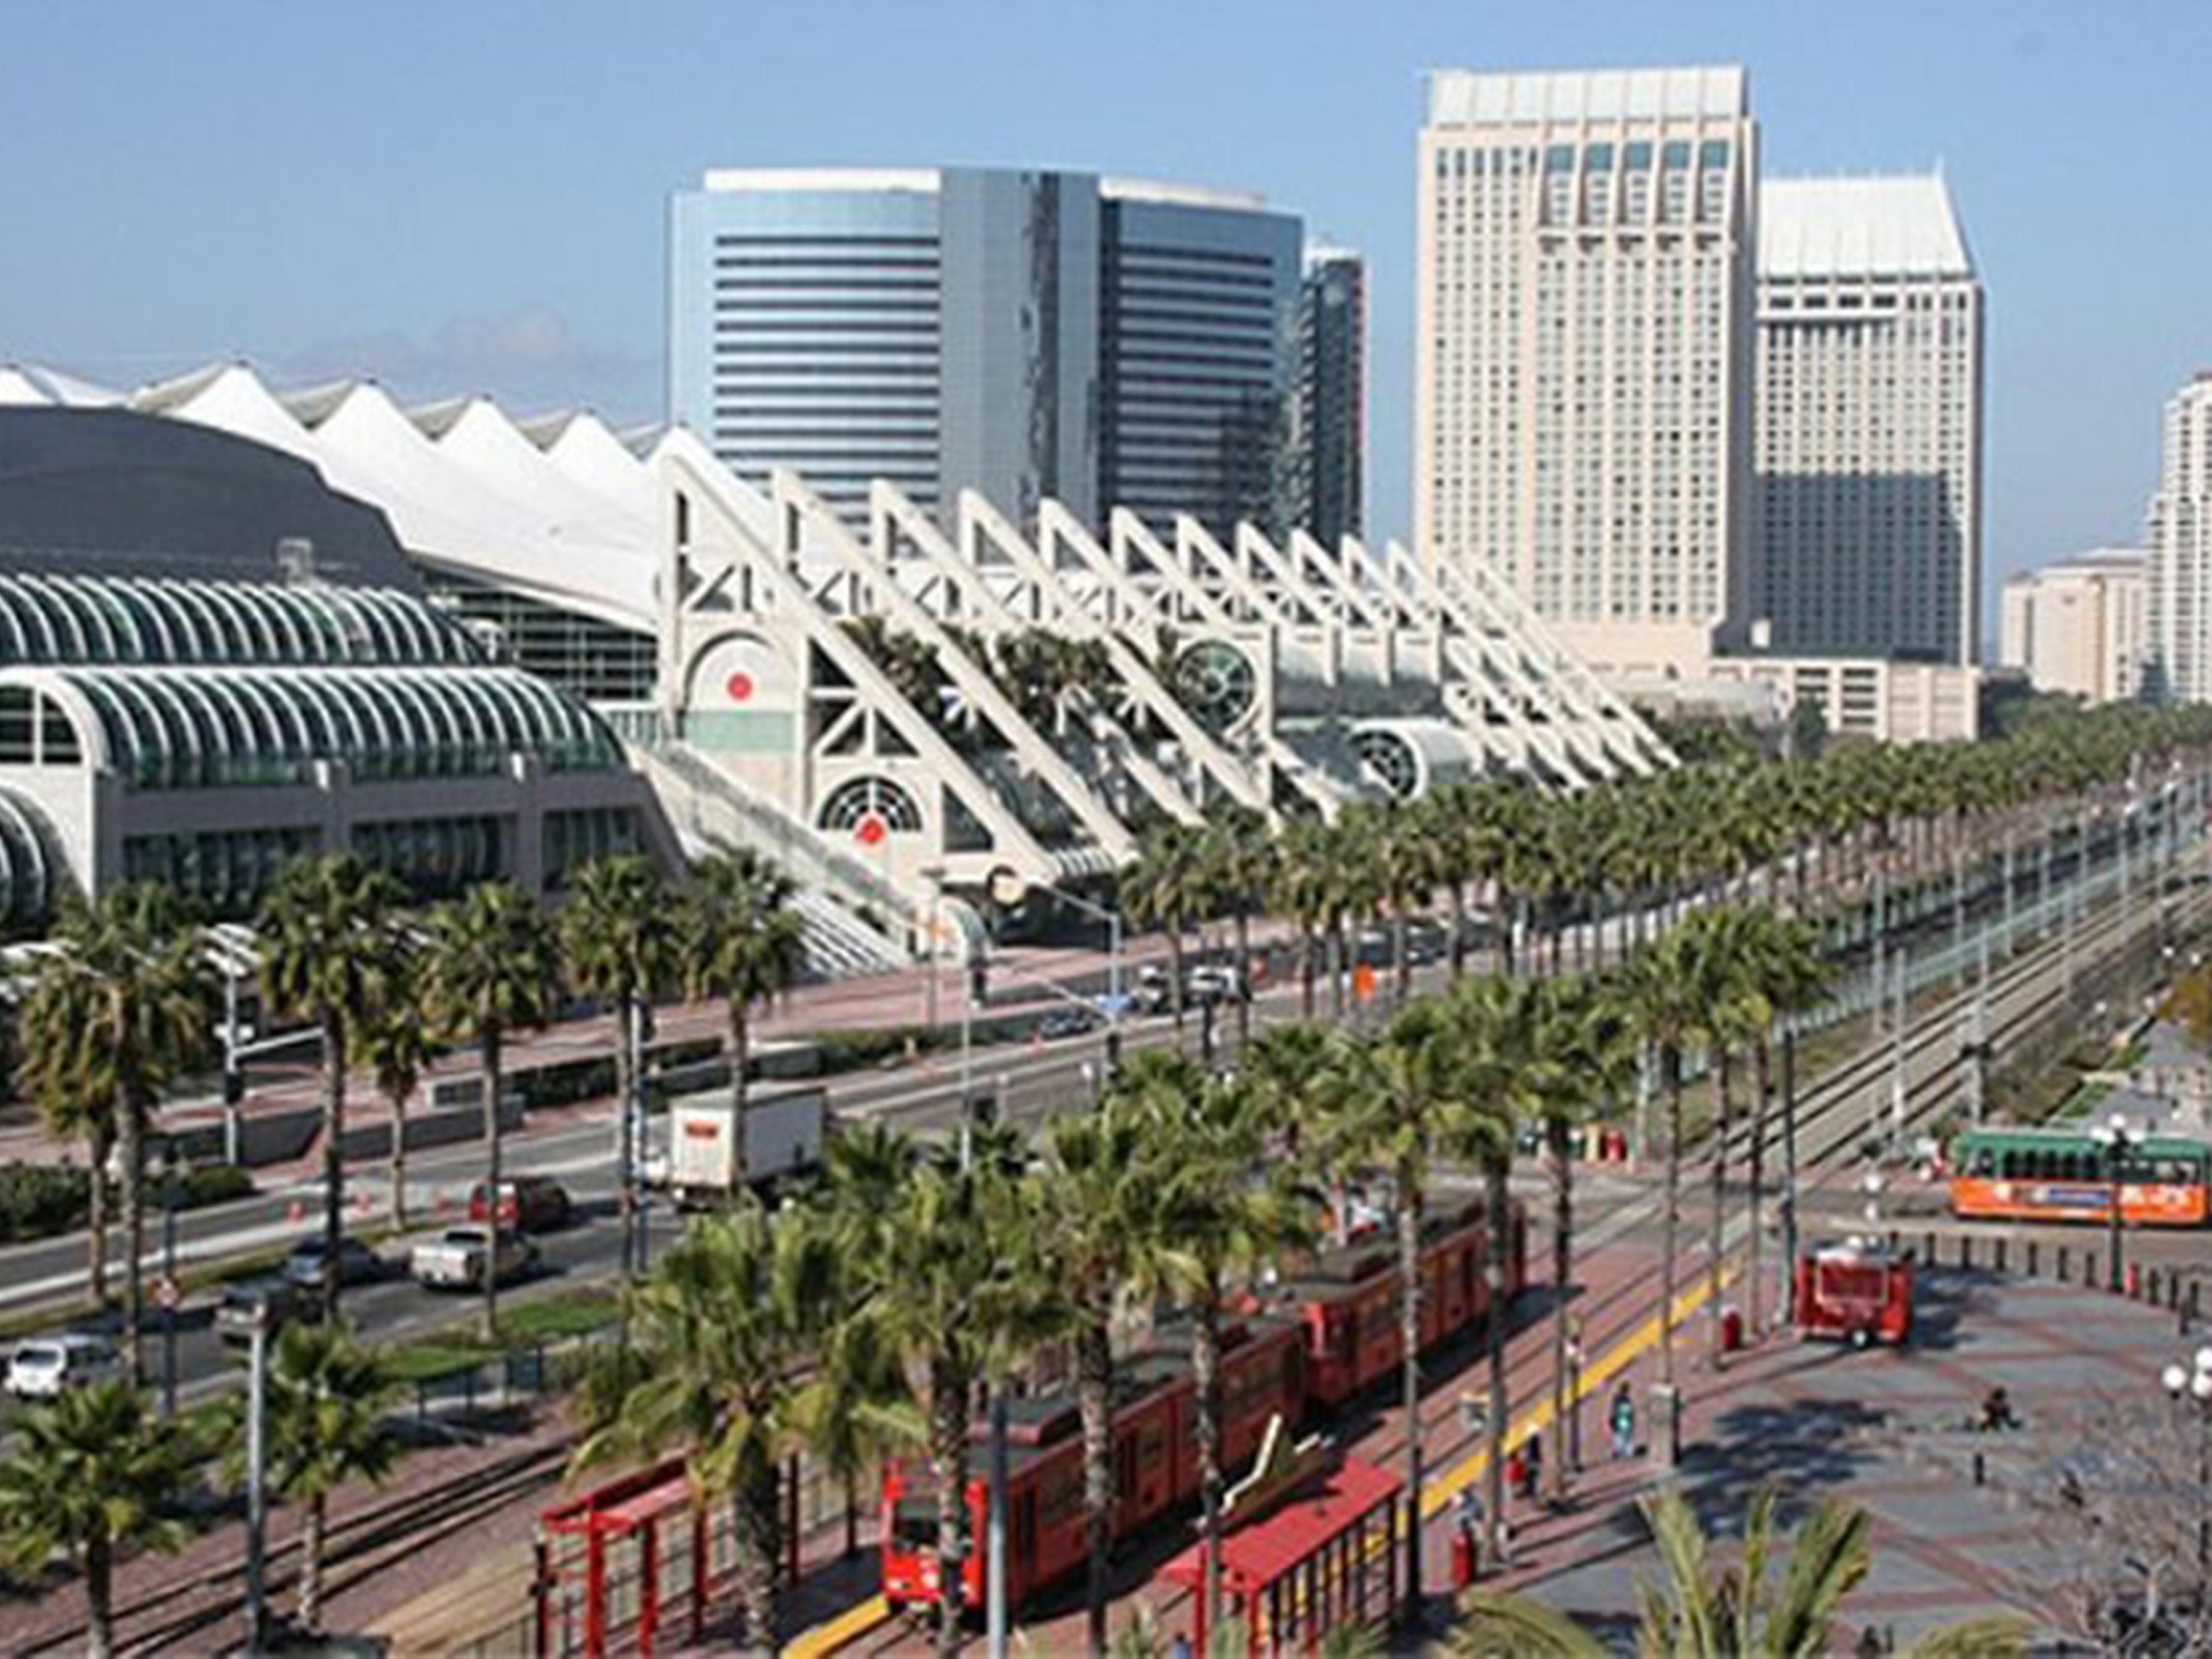 We are a short drive away from San Diego's Convention Center.